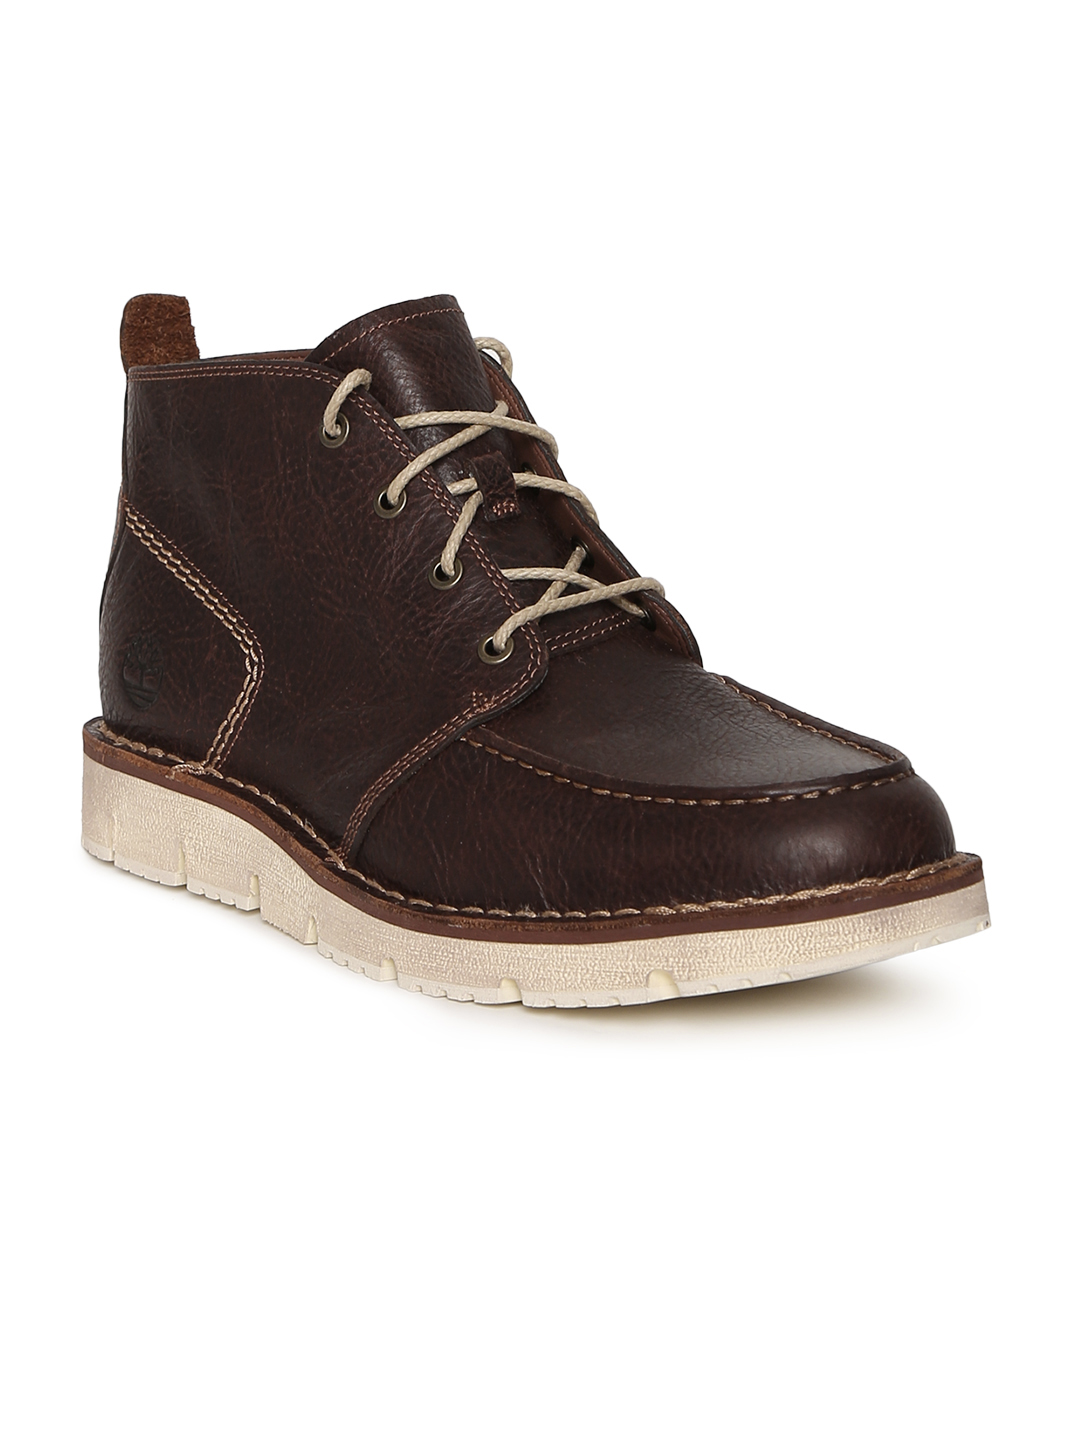 Timberland Women Dark Brown Leather Westmore Boots Price in India